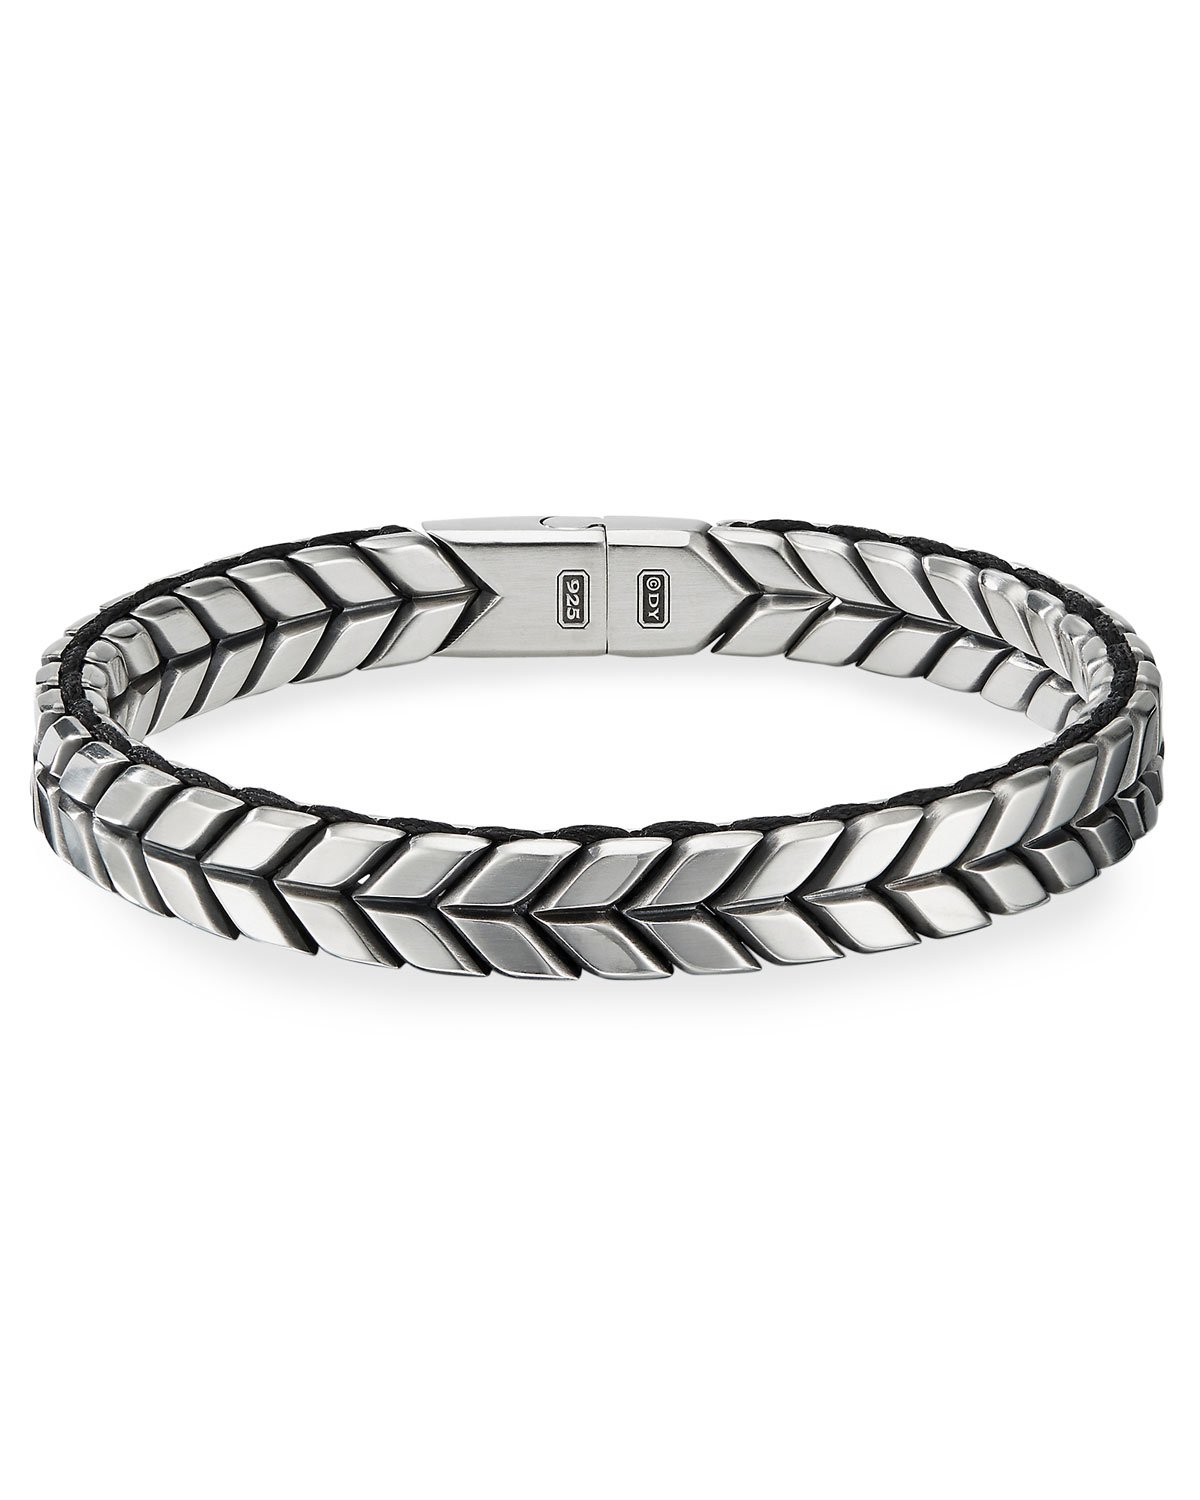 David Yurman Chevron Woven Silver Bracelet